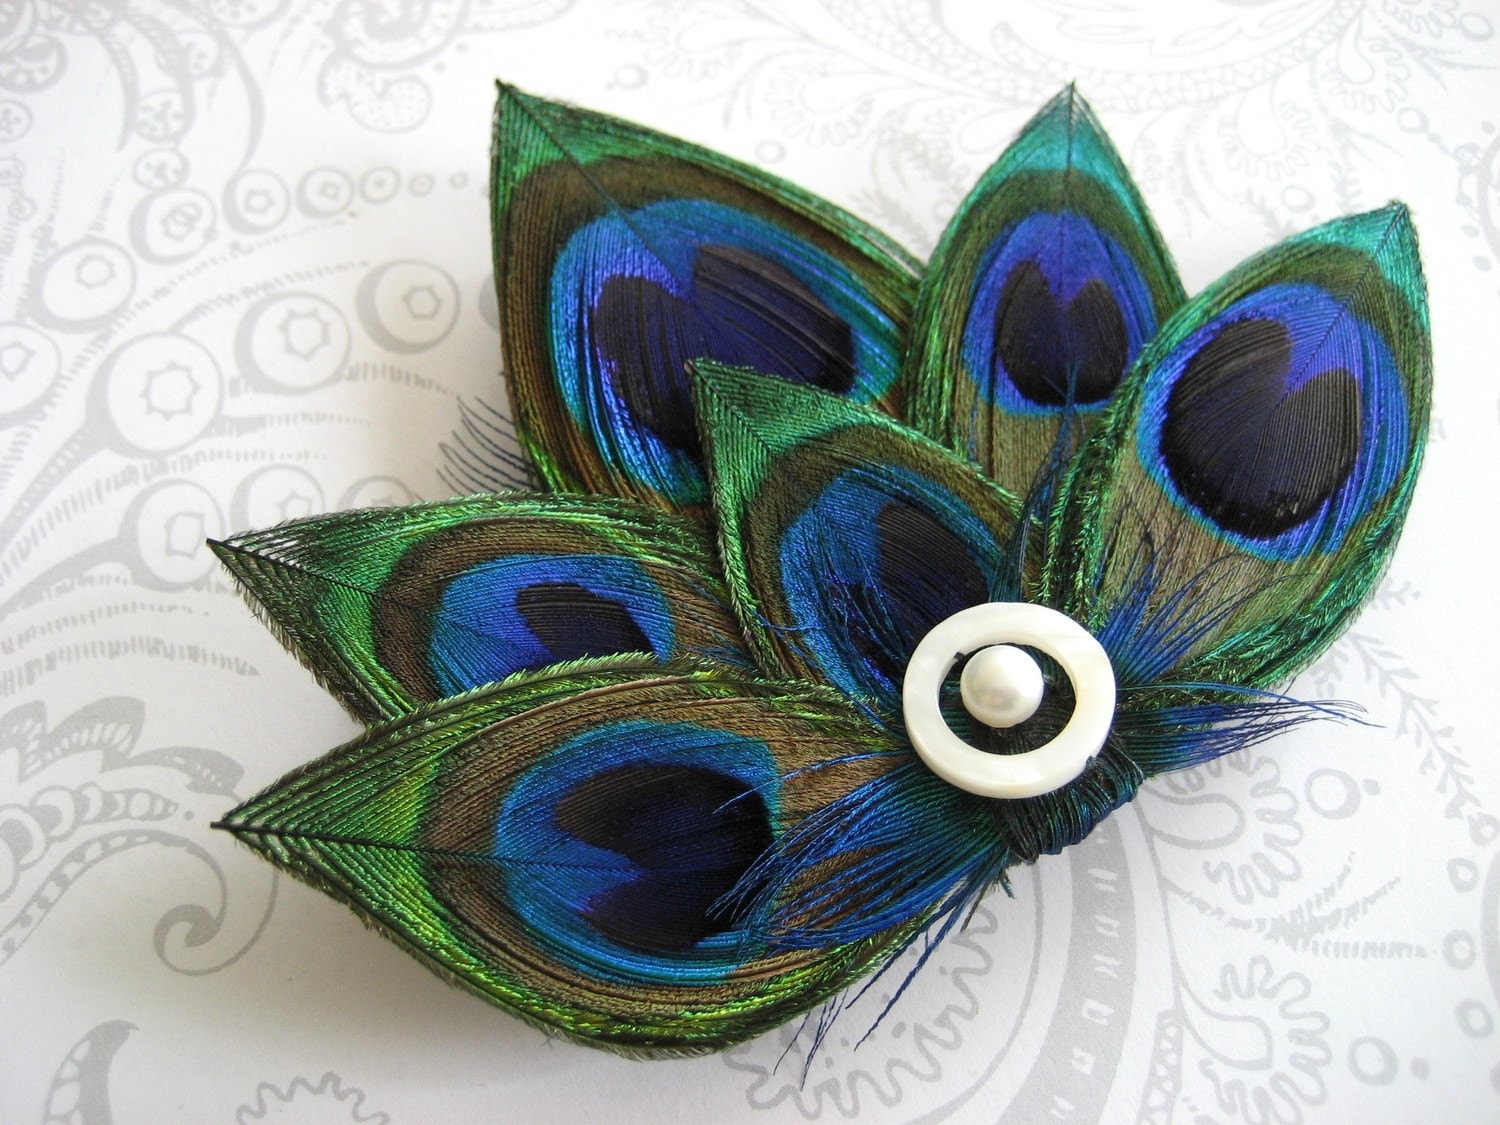 Allison Feather Hair Clip Peacock Eye Lotus Flower With